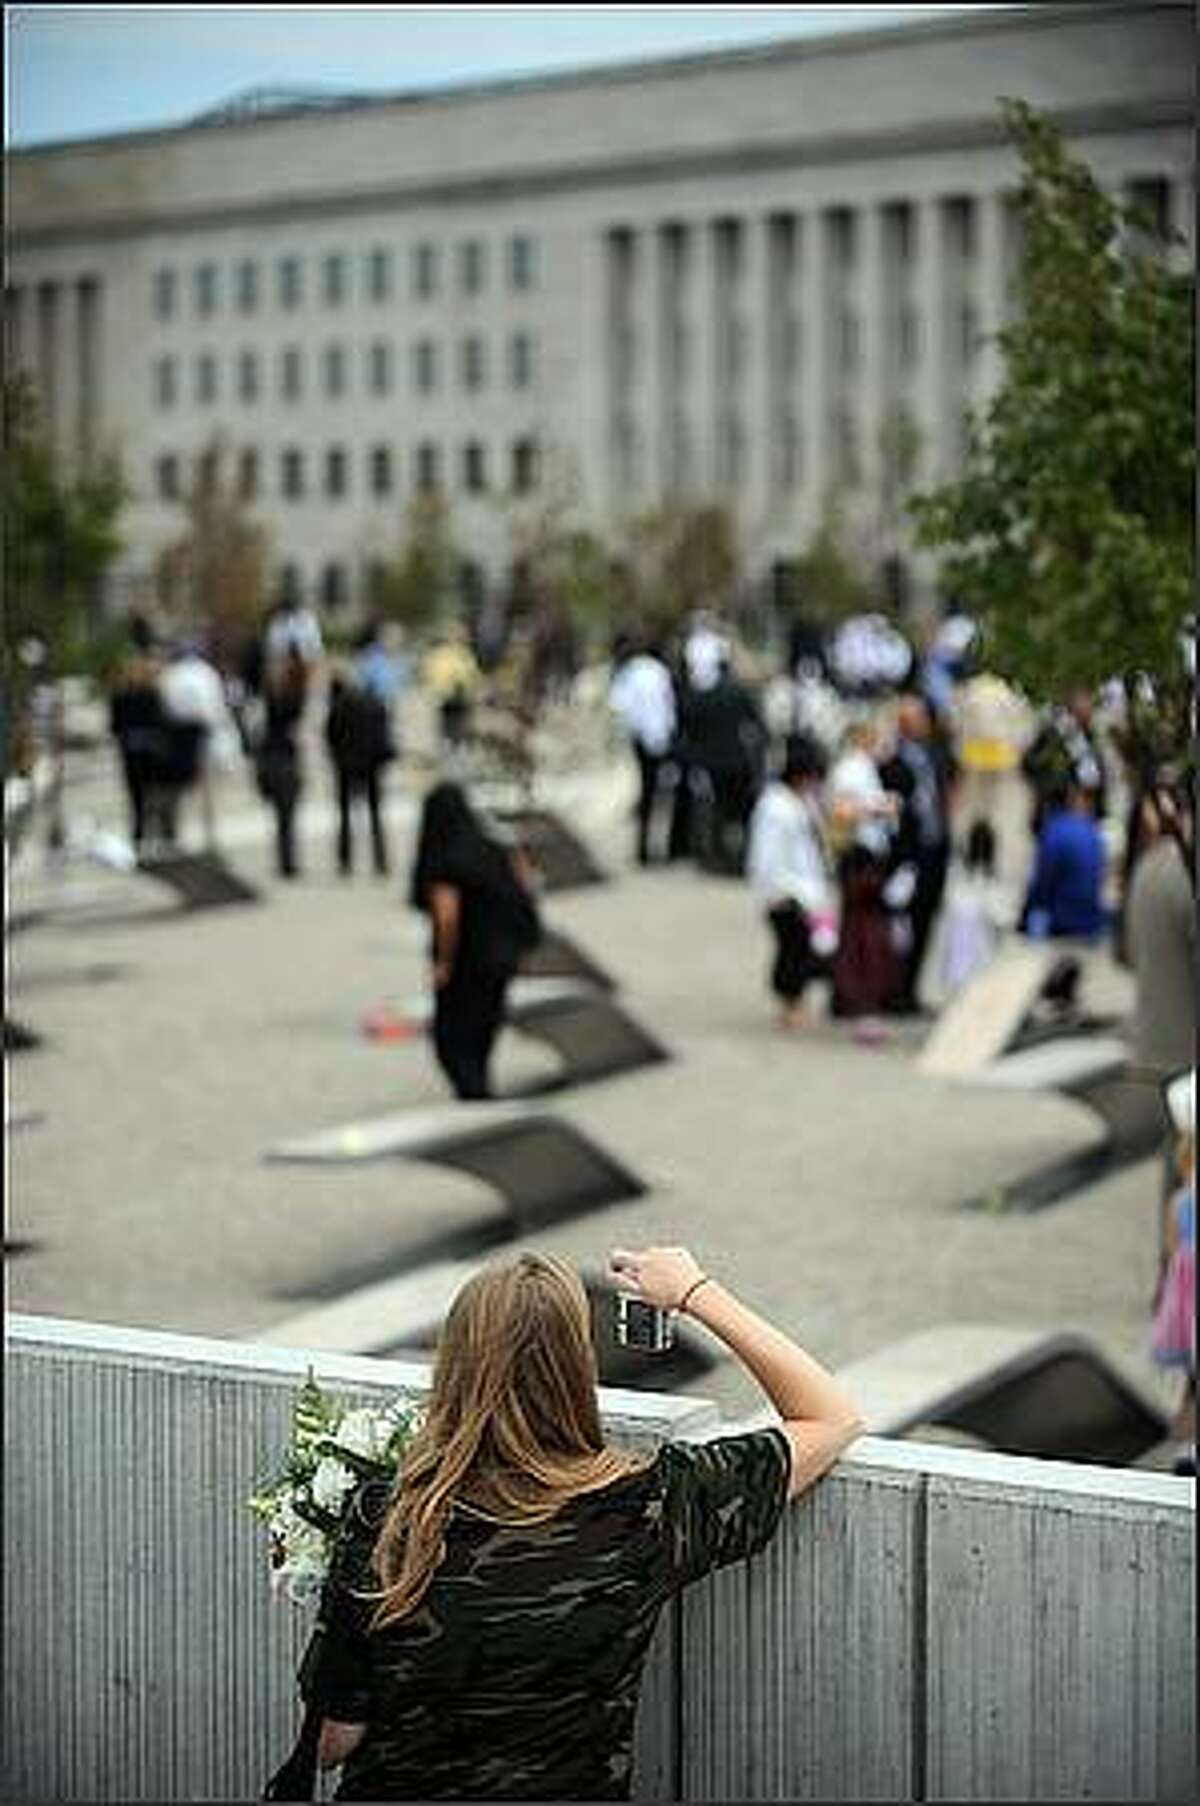 A woman photographs family members as they enter the memorial park after US President George W. Bush officially dedicated the Pentagon Memorial on September 11, 2008 at the Pentagon in Washington, DC. Thousands gathered to dedicate the first September 11 memorial Thursday, observing a moment of silence at the instant seven years ago when an airliner slammed into the Pentagon, killing 184 people and five hijackers. A sailor rang a bell for each of the victims of the attack on the Pentagon, which followed strikes by airliners commandeered by Al-Qaeda suicide squads on the World Trade Center in New York. A fourth hijacked plane crashed in a field in Pennsylvania. AFP PHOTO / TIM SLOAN (Photo credit should read TIM SLOAN/AFP/Getty Images)